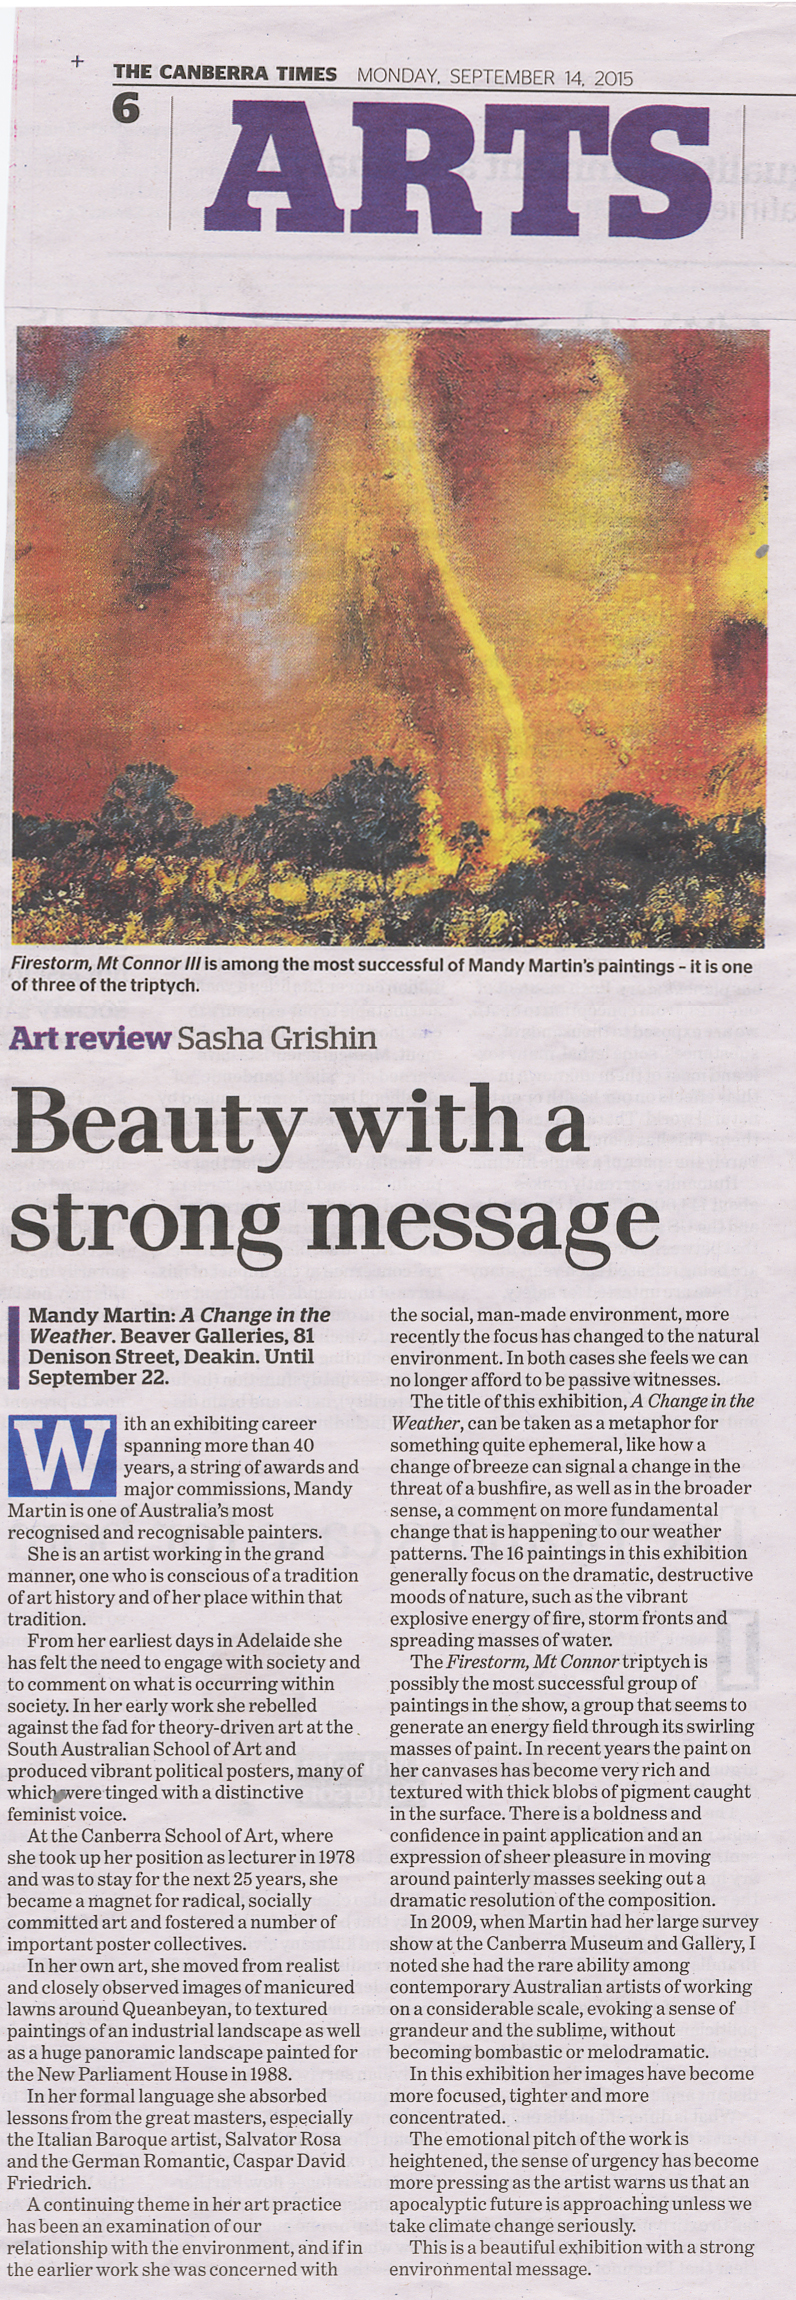 Art Review - The Canberra Times, Monday 14th September